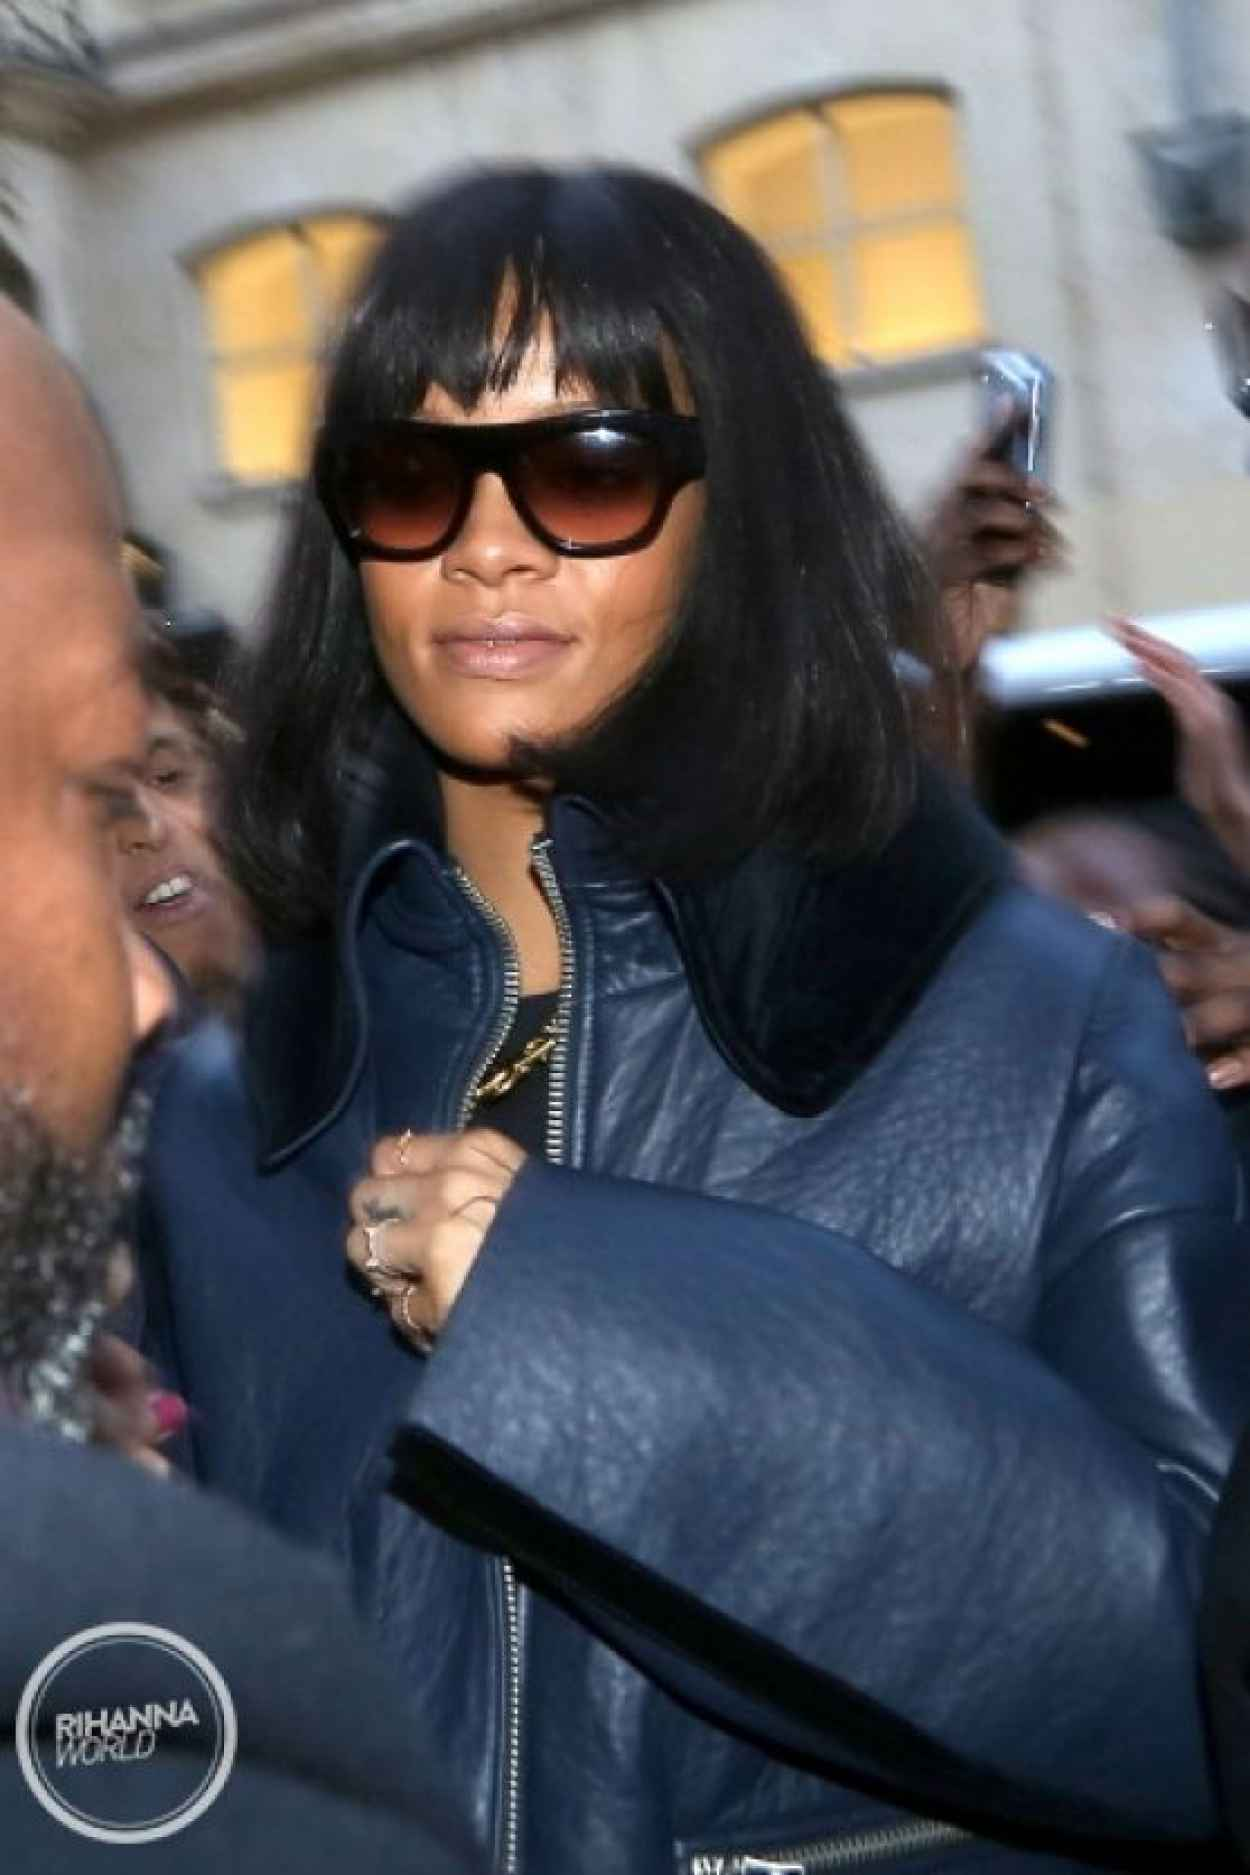 Rihanna in Paris - Spotted Arriving At Her Hotel - February 2015-1